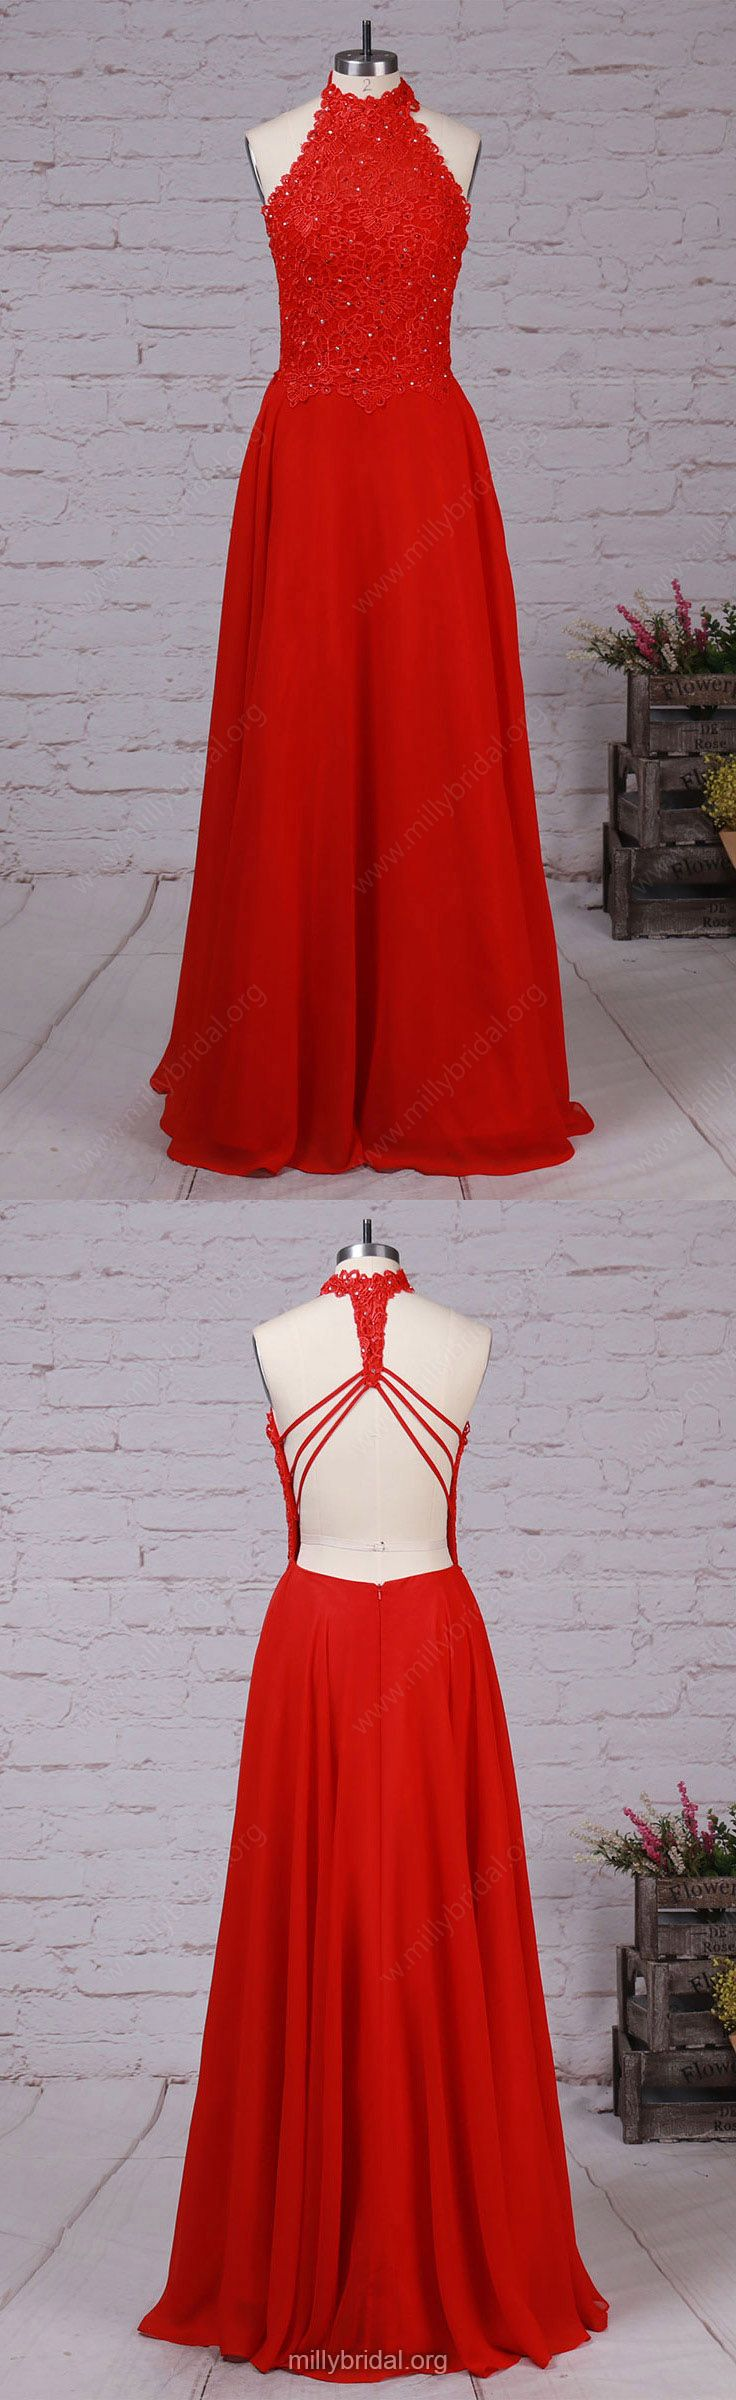 Red Prom Dresses,Long Prom Dresses,2018 Prom Dresses For Teens,Modest Prom Dresses A-line, High Neck Prom Dresses Lace, Chiffon Prom Dresses Beading #formaldresses